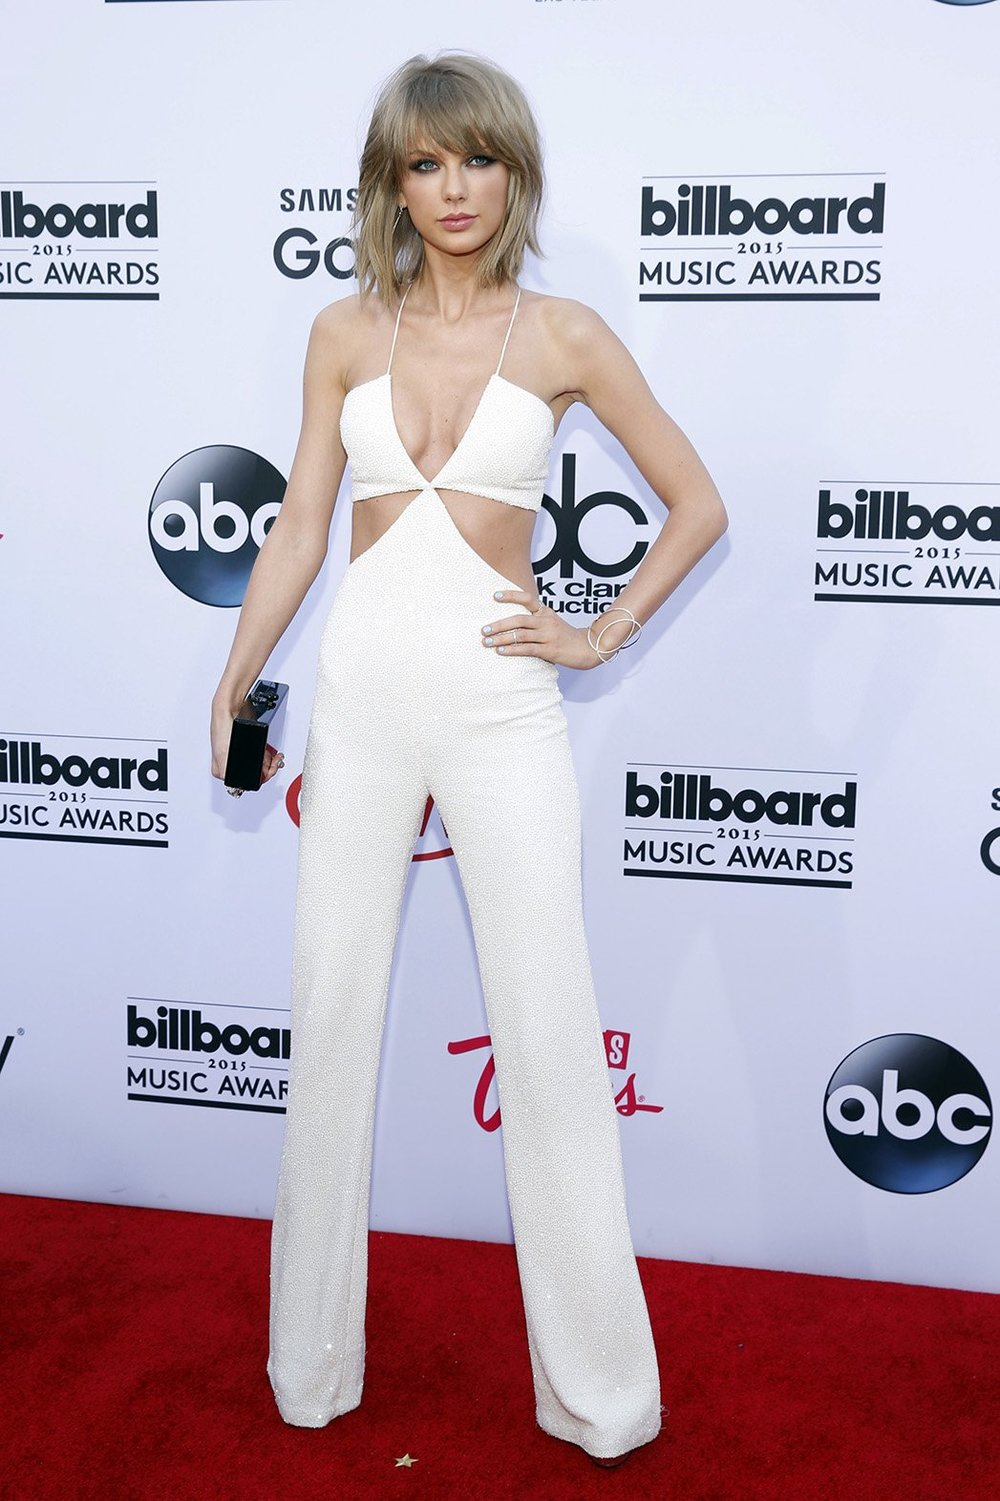 Taylor Swift wearing Balmain jumpsuit at the Billboard Music Awards 2015. Photo source: Getty Images.